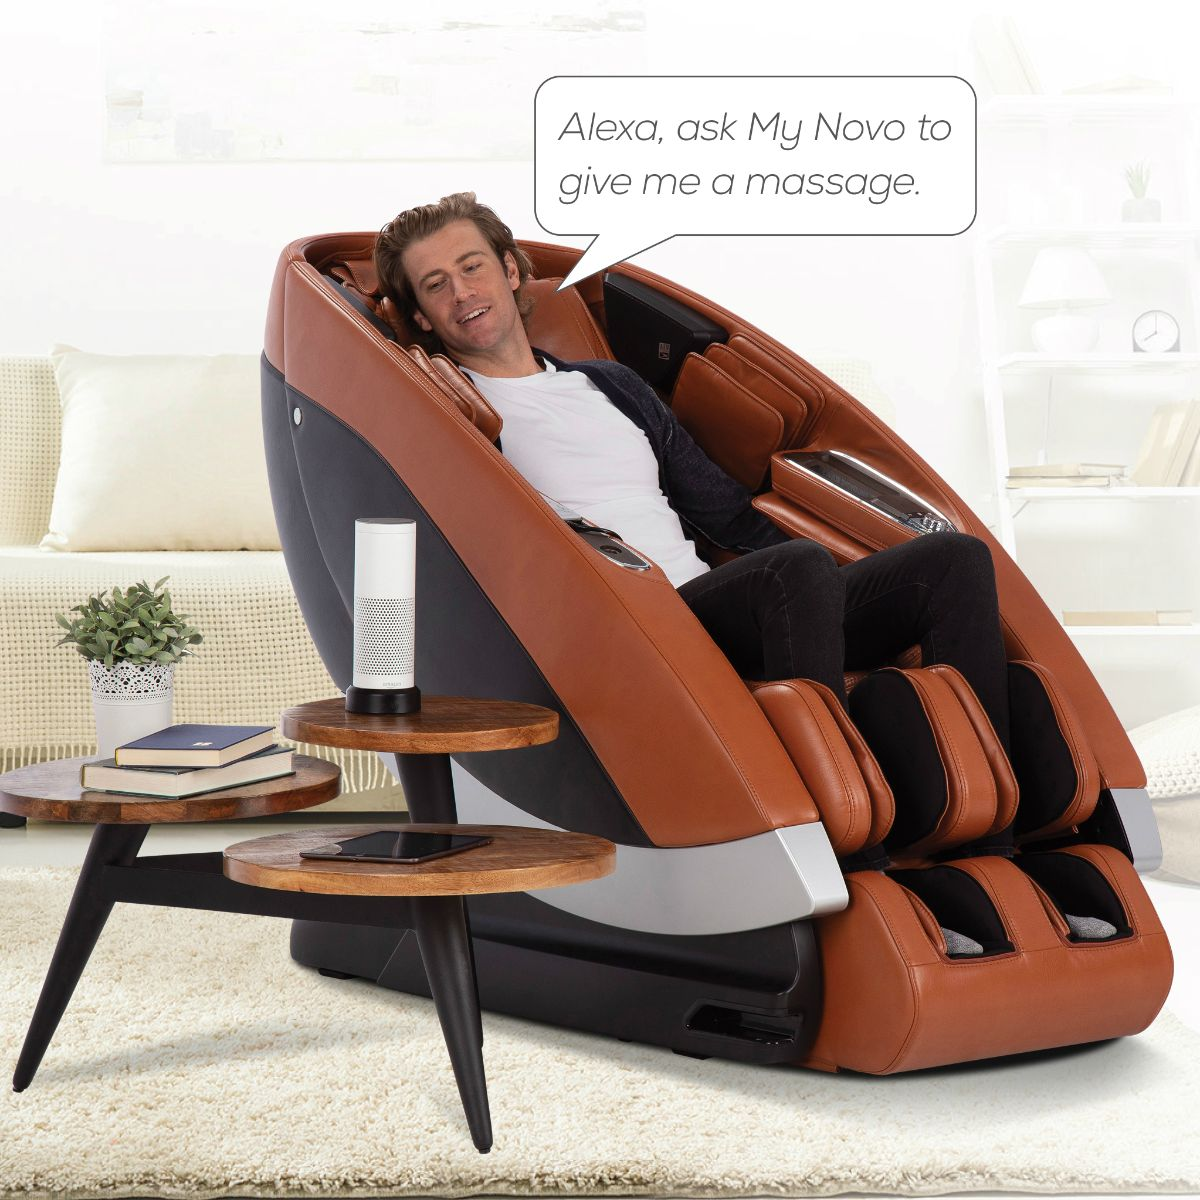 Man in Super Novo Massage Chair talking to Amazon Alexa device